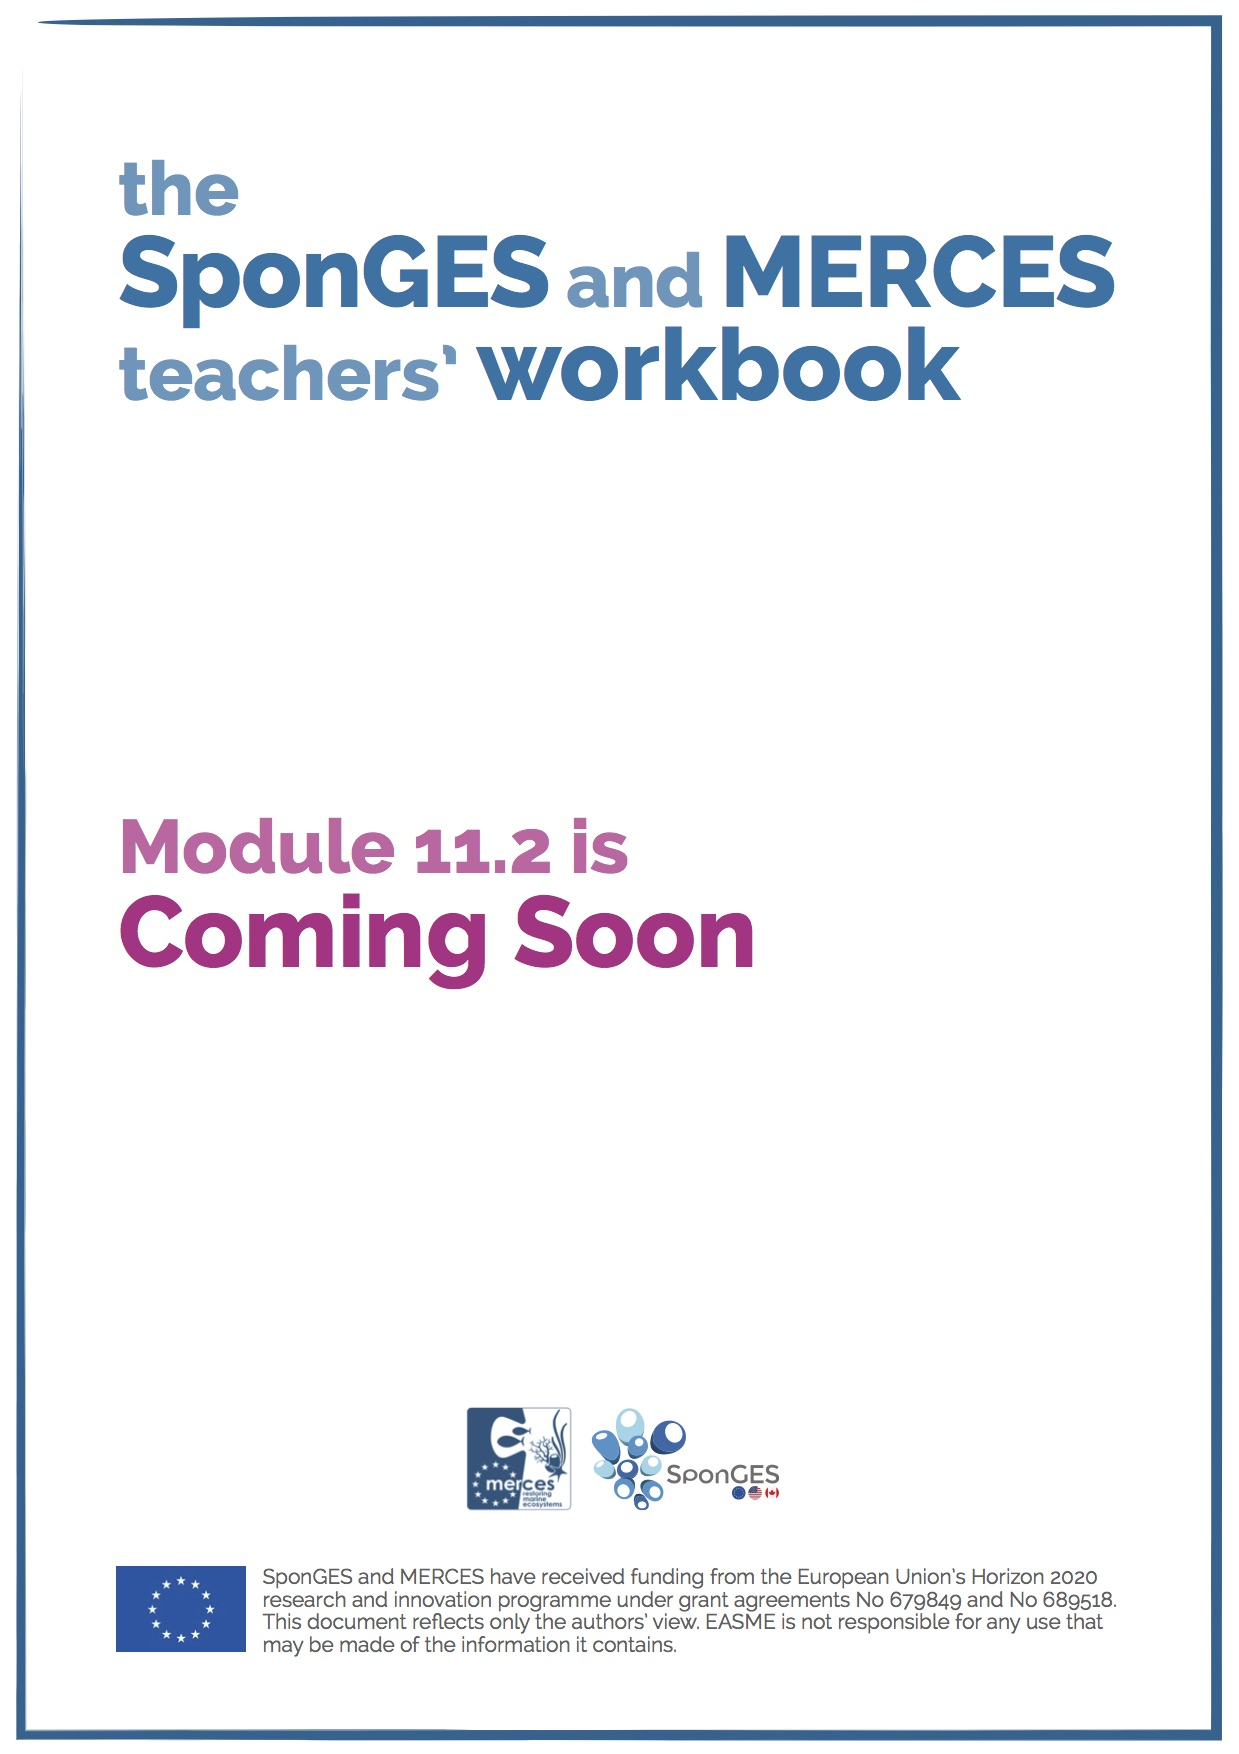 Module 11.2 of the SponGES and MERCES teachers' workbook